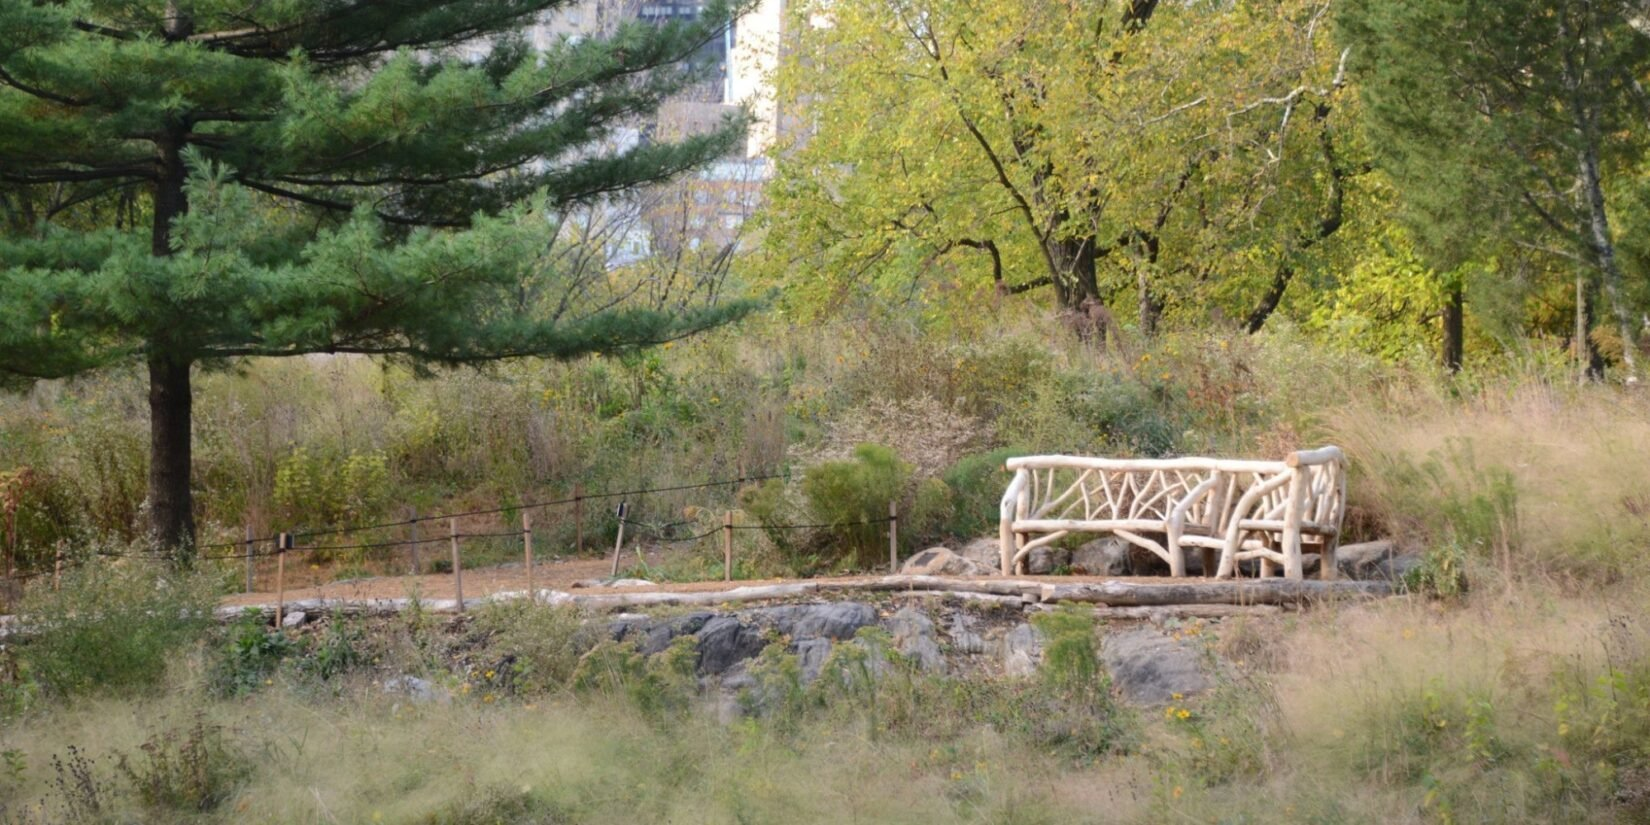 A rustic bench sits in the natural landscape of the Dene.